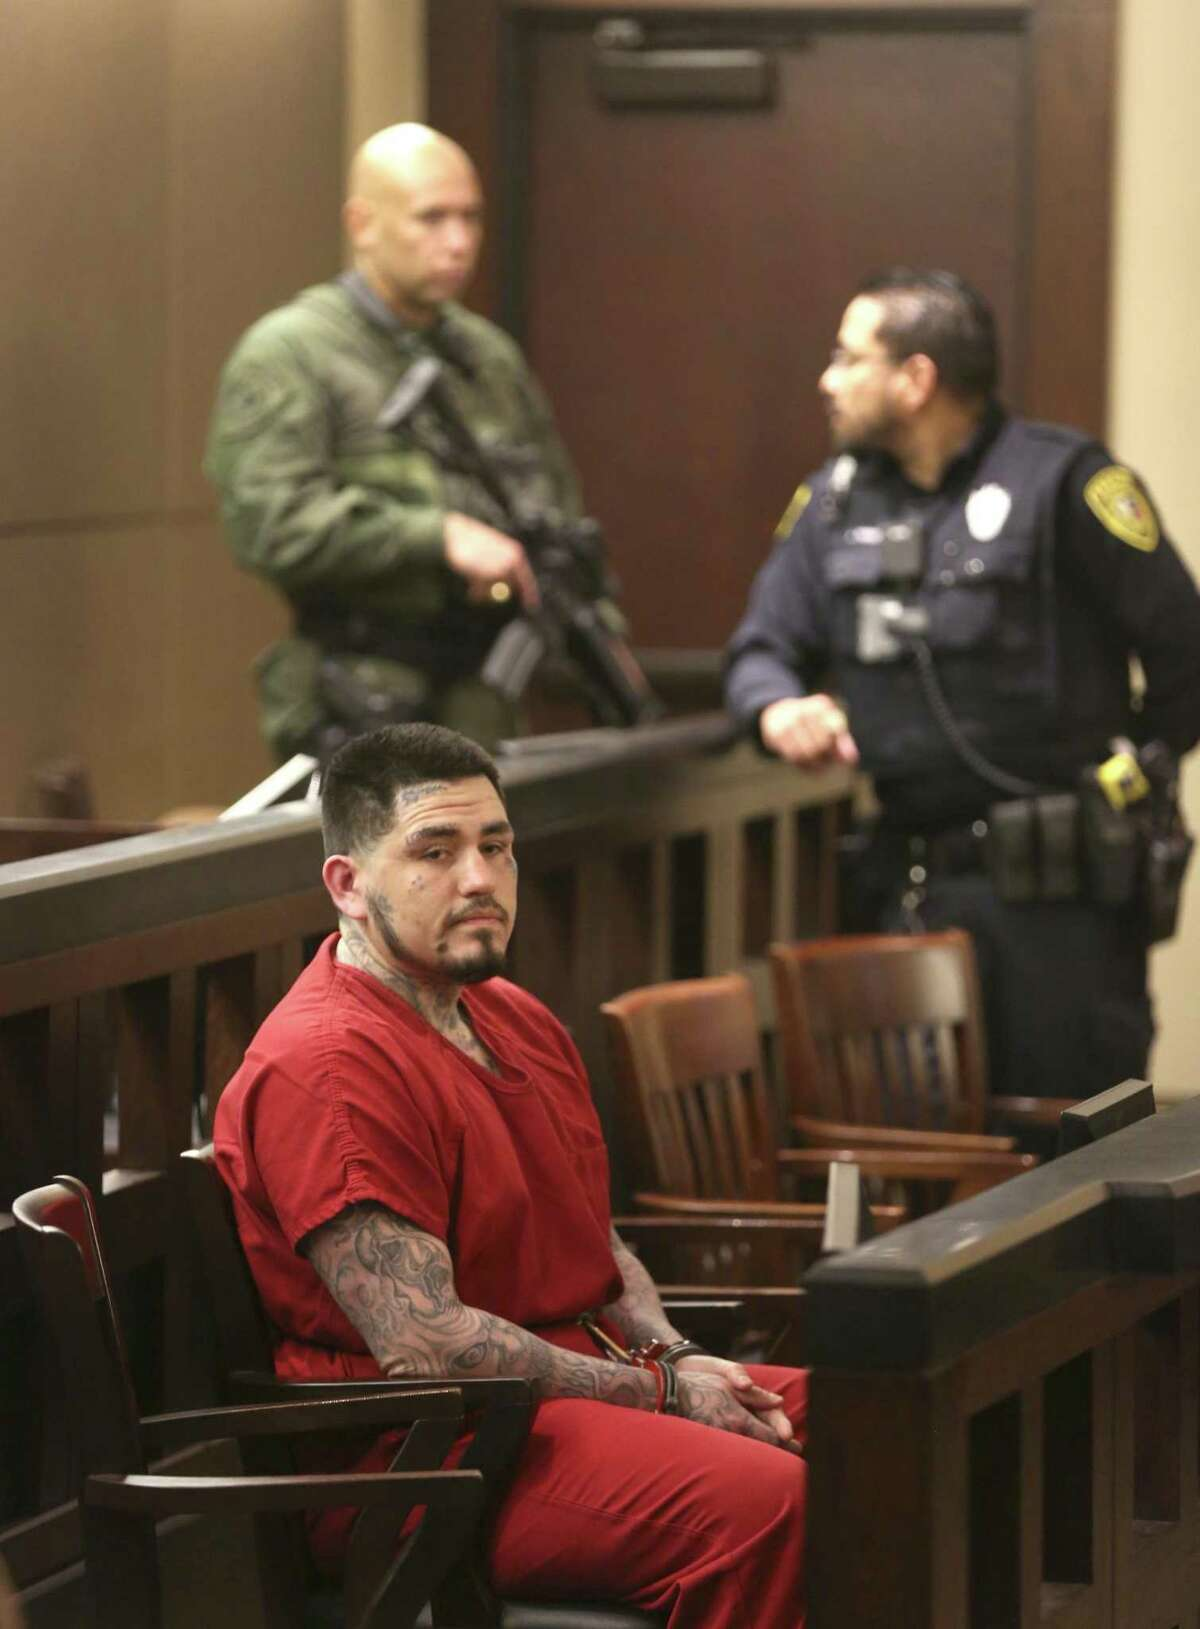 Daniel Moreno Lopez, convicted of beating a man to death, dismembering his body and burning his limbs on a barbecue pit, sits under heavy guard Thursday, Nov. 1, 2018 in the 379th state District Court in the Cadena-Reeves Criminal Justice Center during the second day of his sentencing trial.